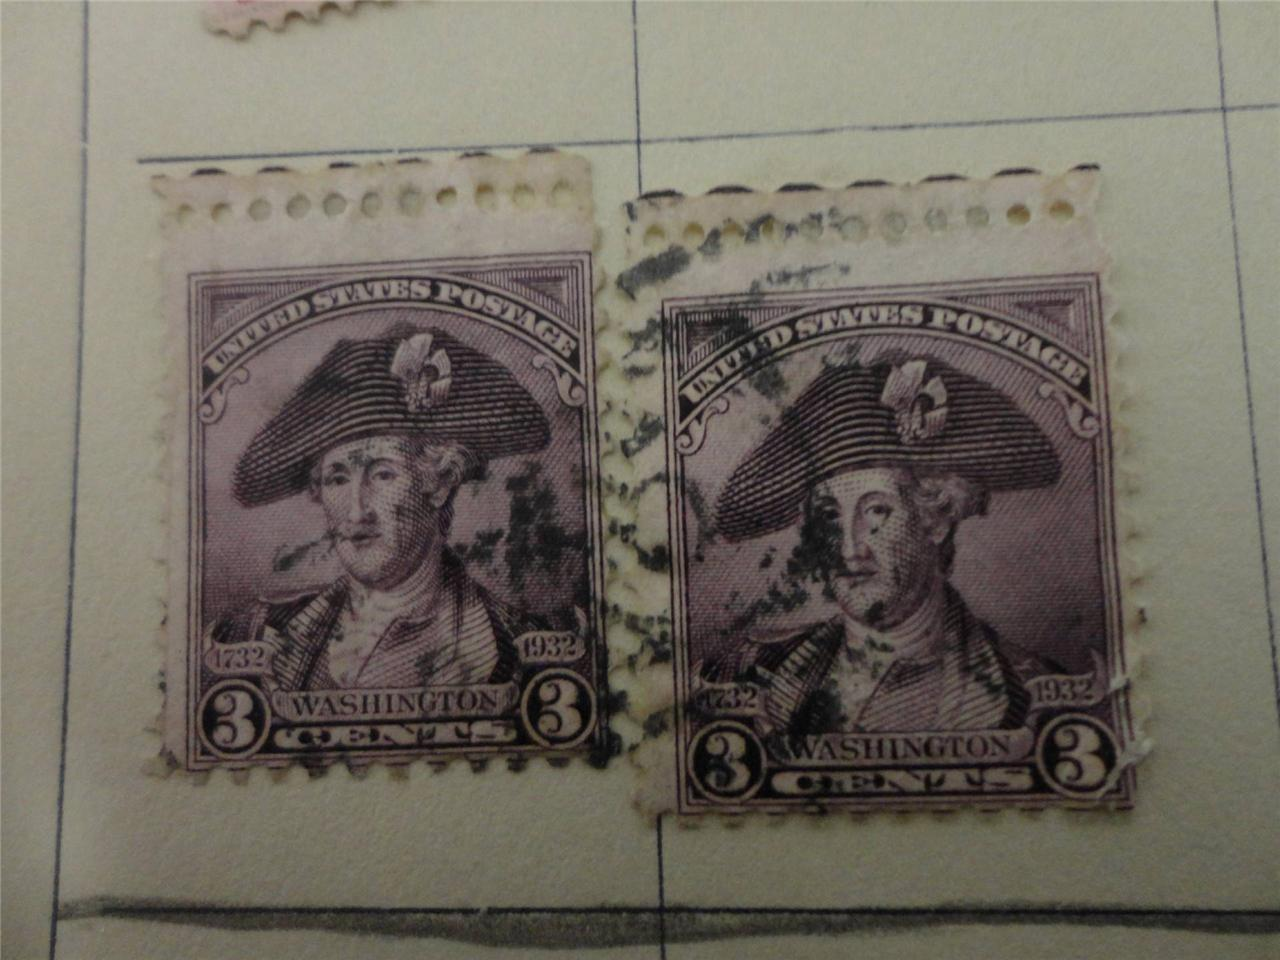 Lot of 6 Vintage 1932 US Postage Stamp Washington 2c Rose 3c Violet